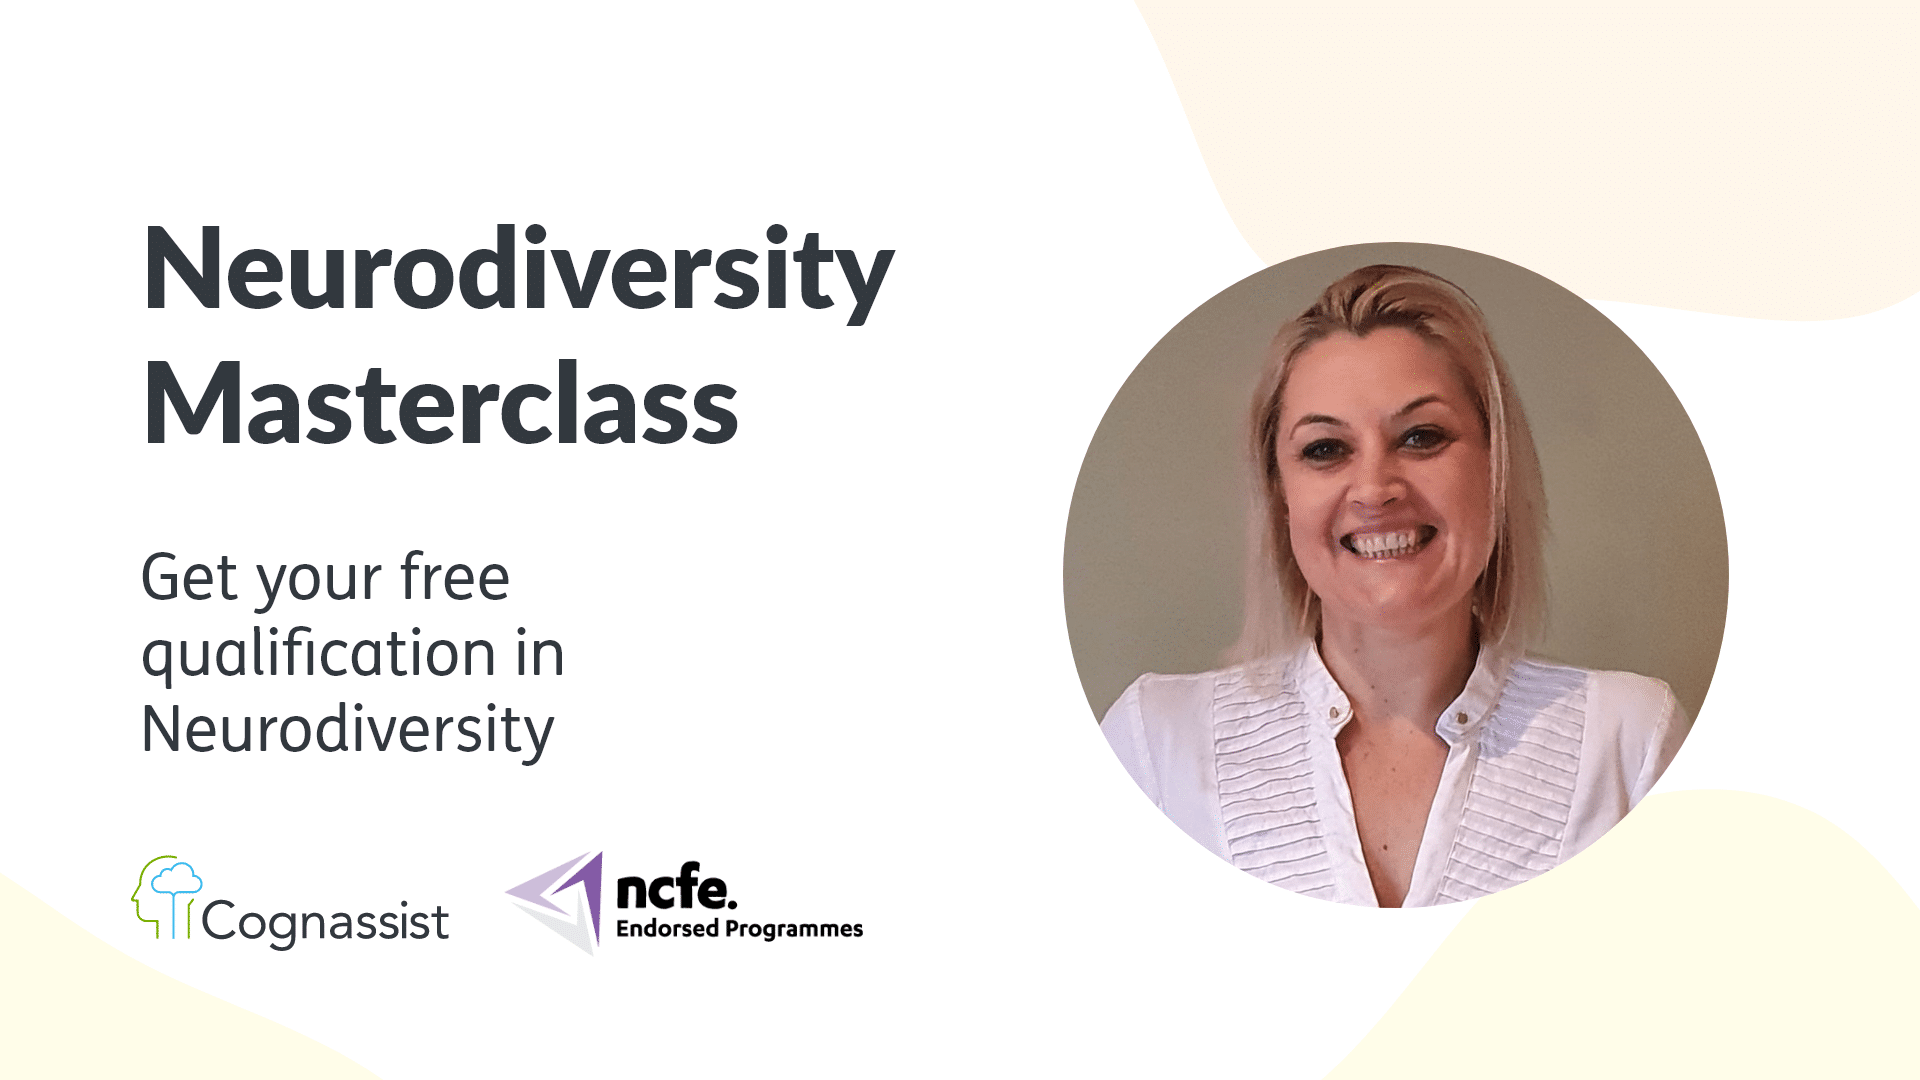 The Neurodiversity Masterclass